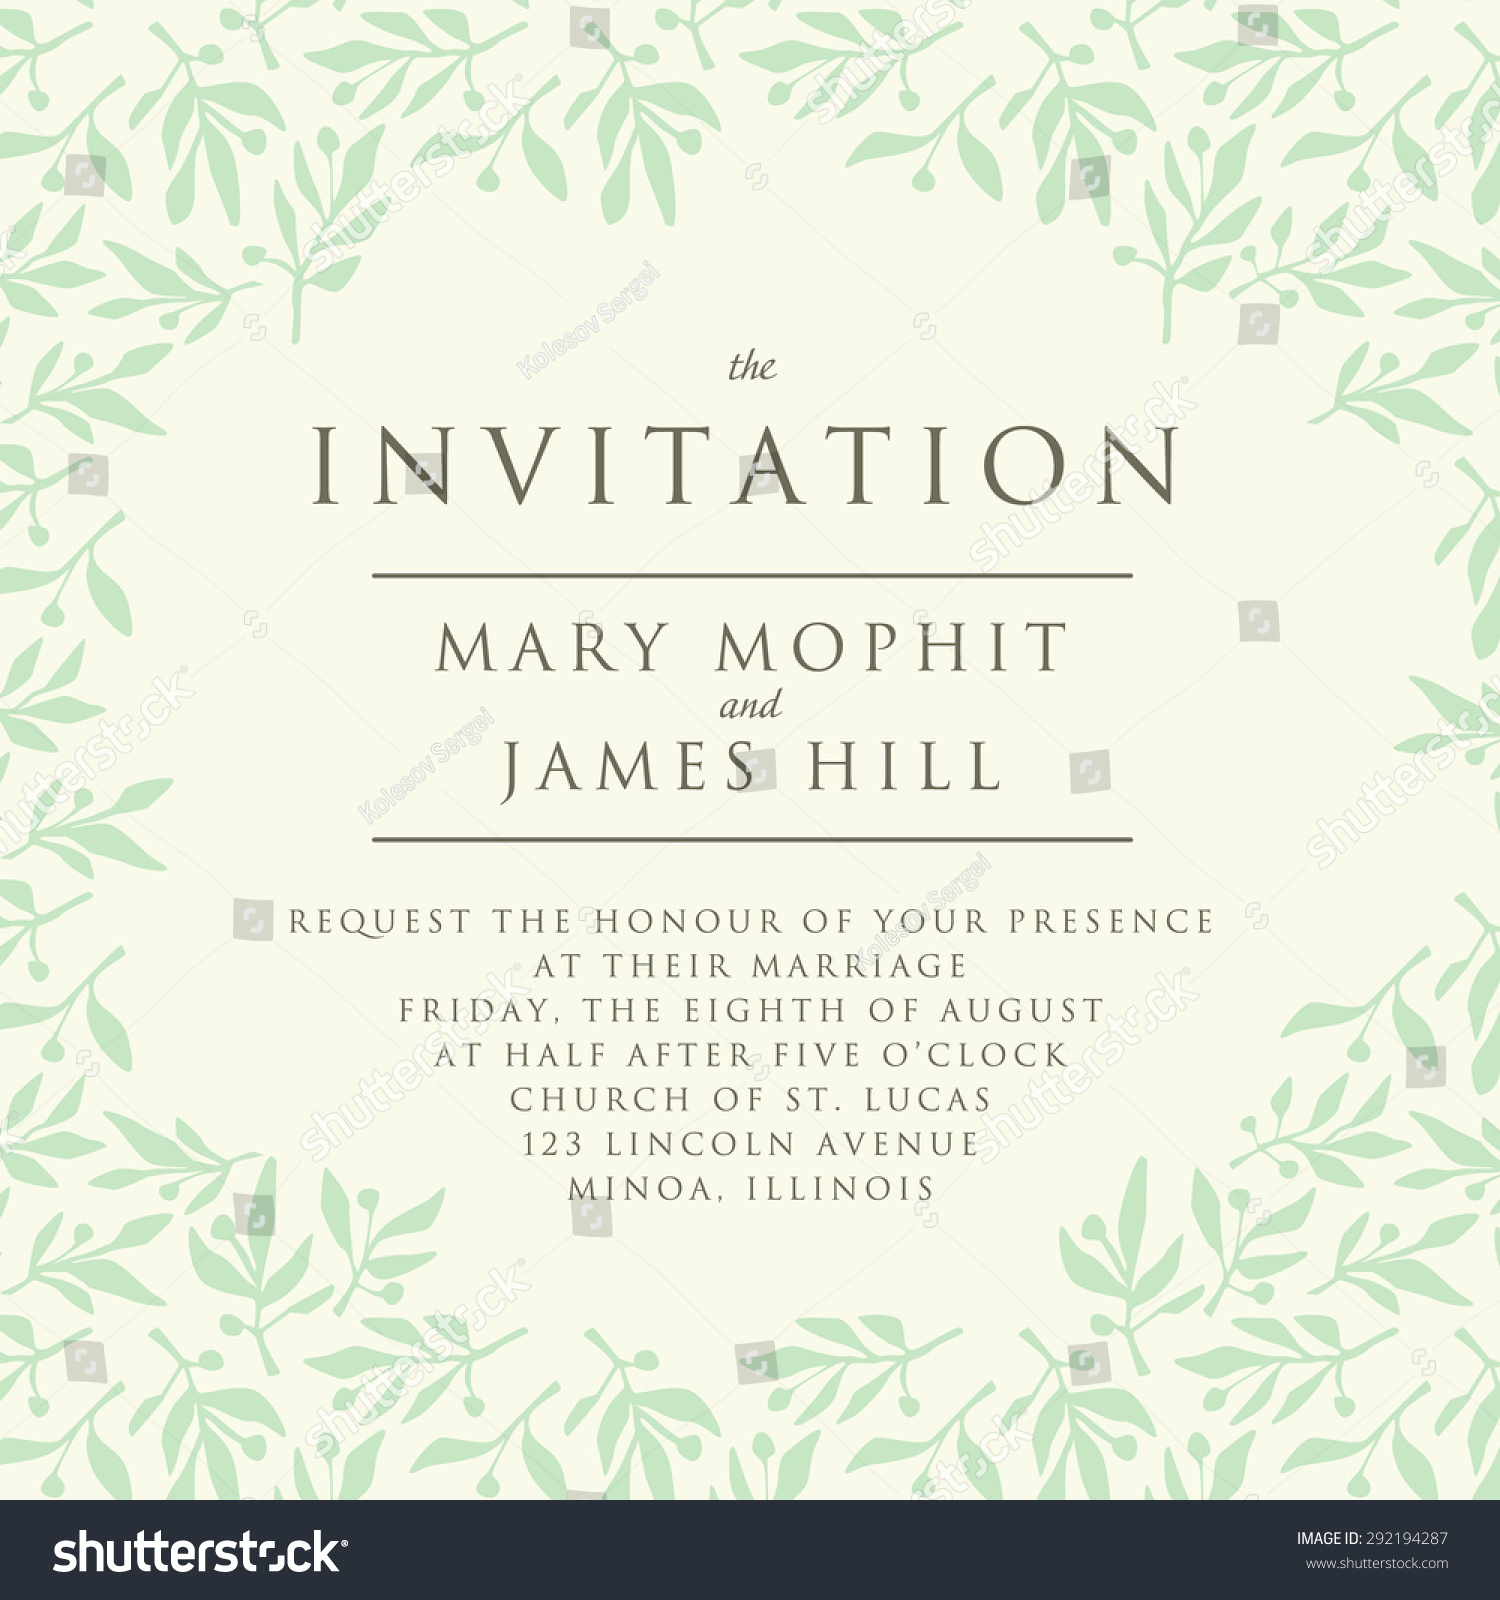 invitation pattern olive branch template wedding のベクター画像素材